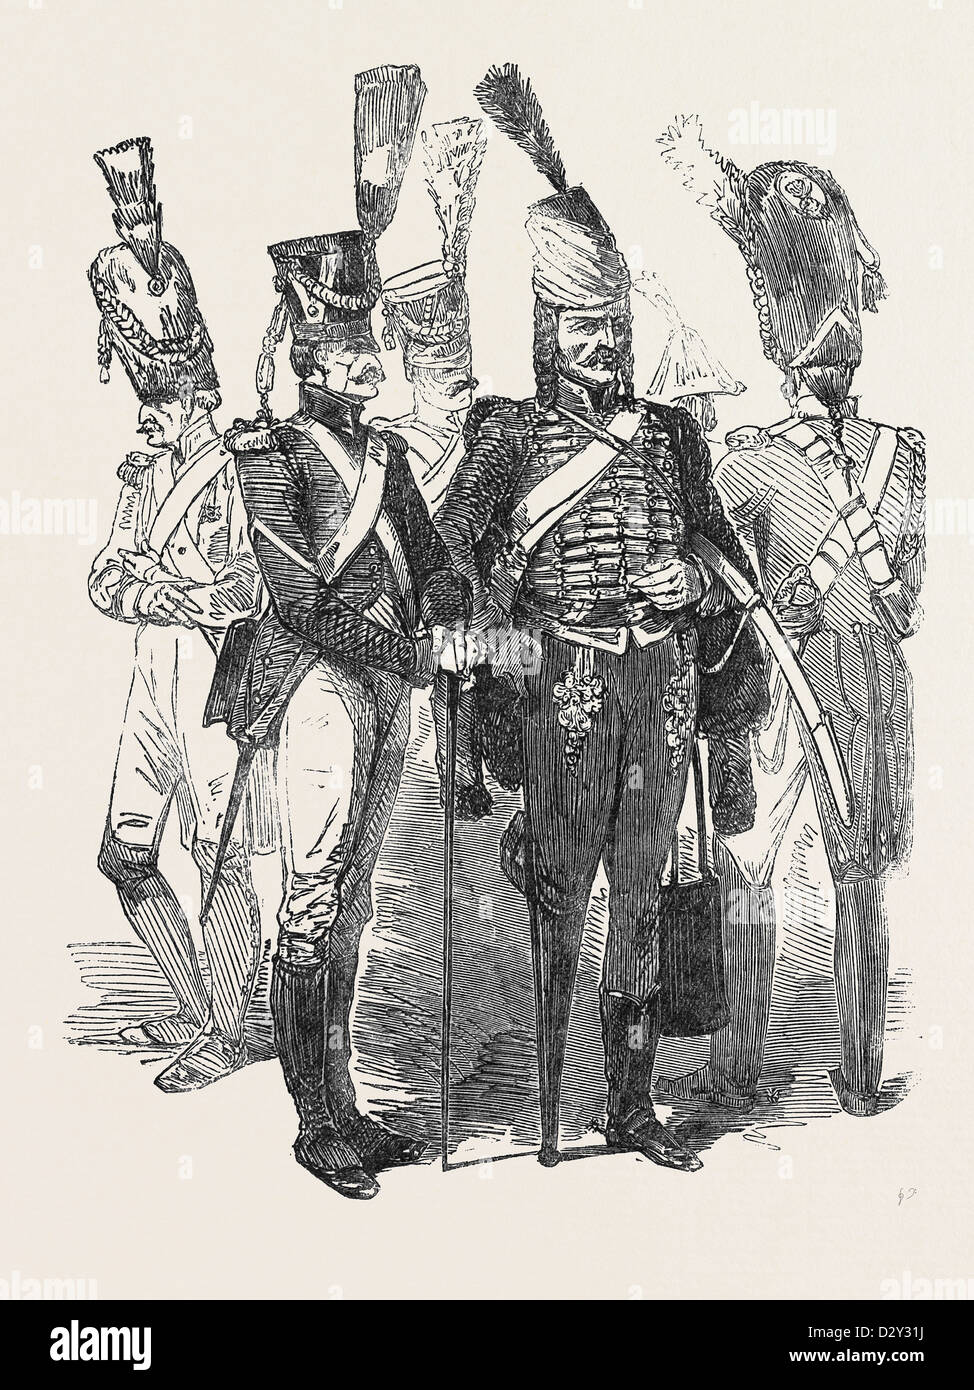 OLD SOLDIERS OF THE FRENCH EMPIRE, 1852 - Stock Image